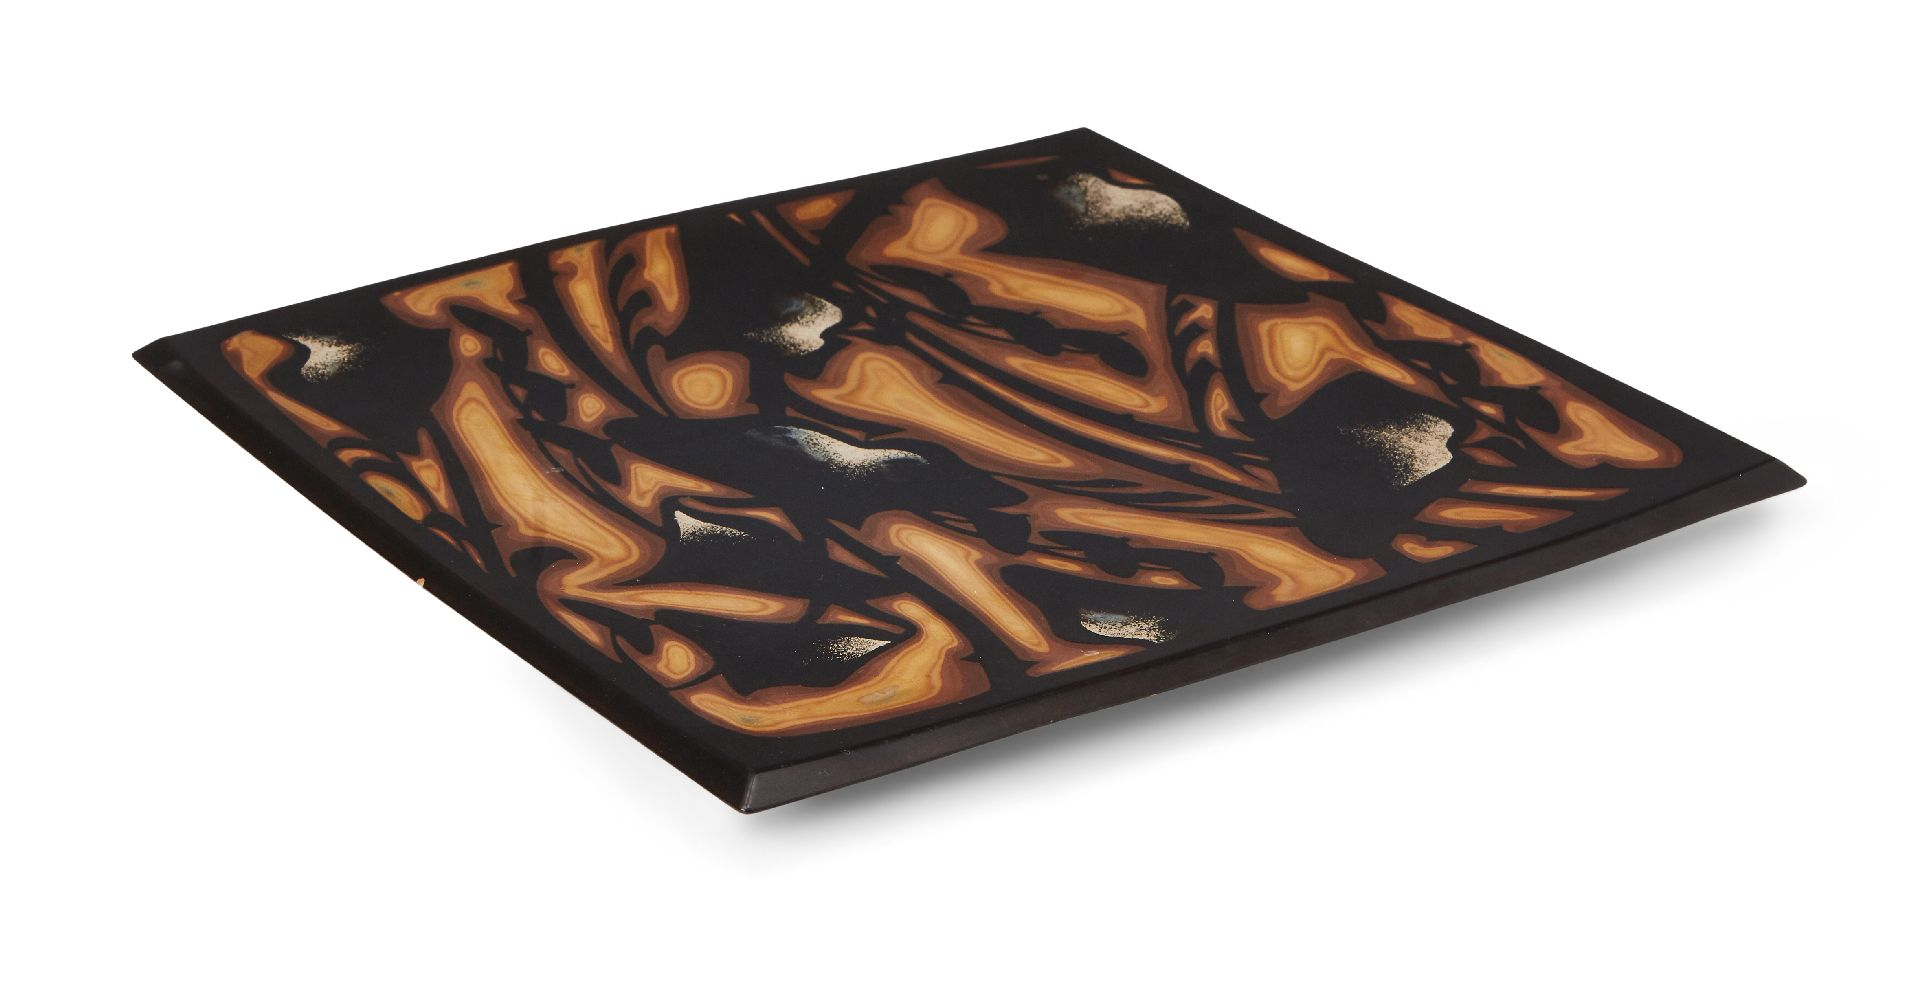 A Japanese lacquer square plate, 20th Century, decorated with layered lacquer ground down in